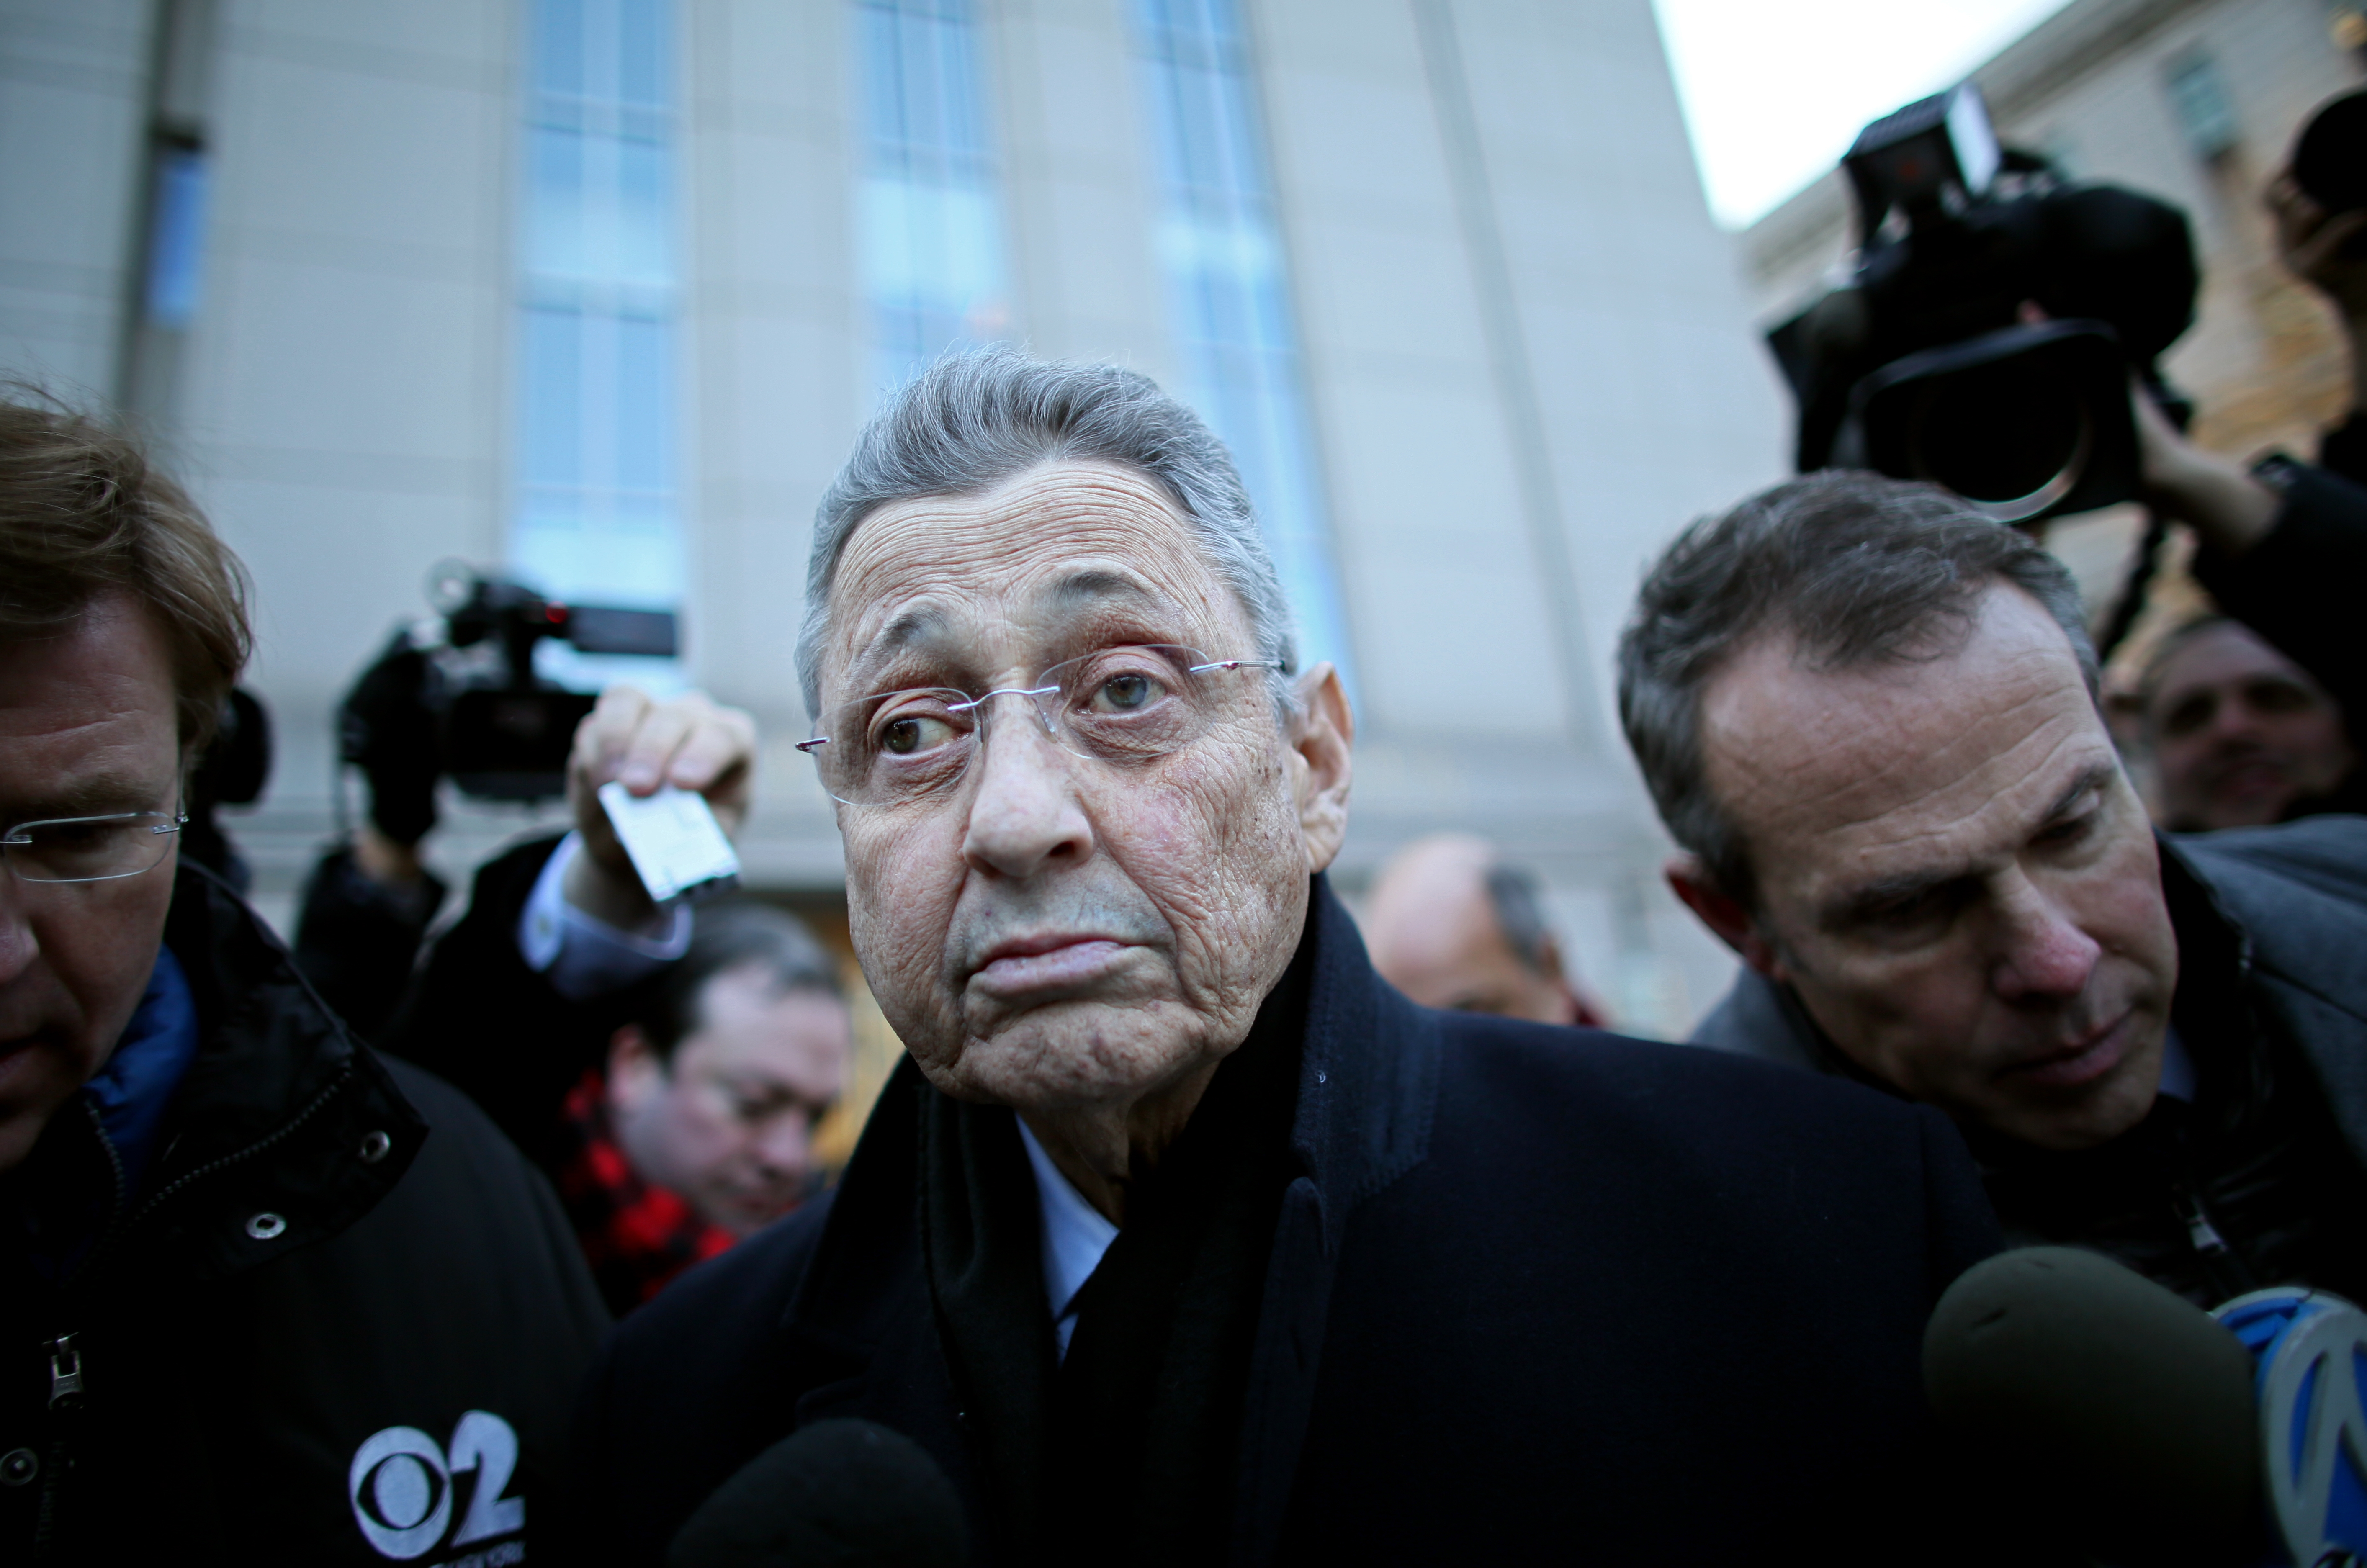 Indicted Assemblyman Sheldon Silver's Buffalo-area investments include the tech company Synacor and senior-housing developer Clover Management, according to new court filings. (Getty Images file photo)